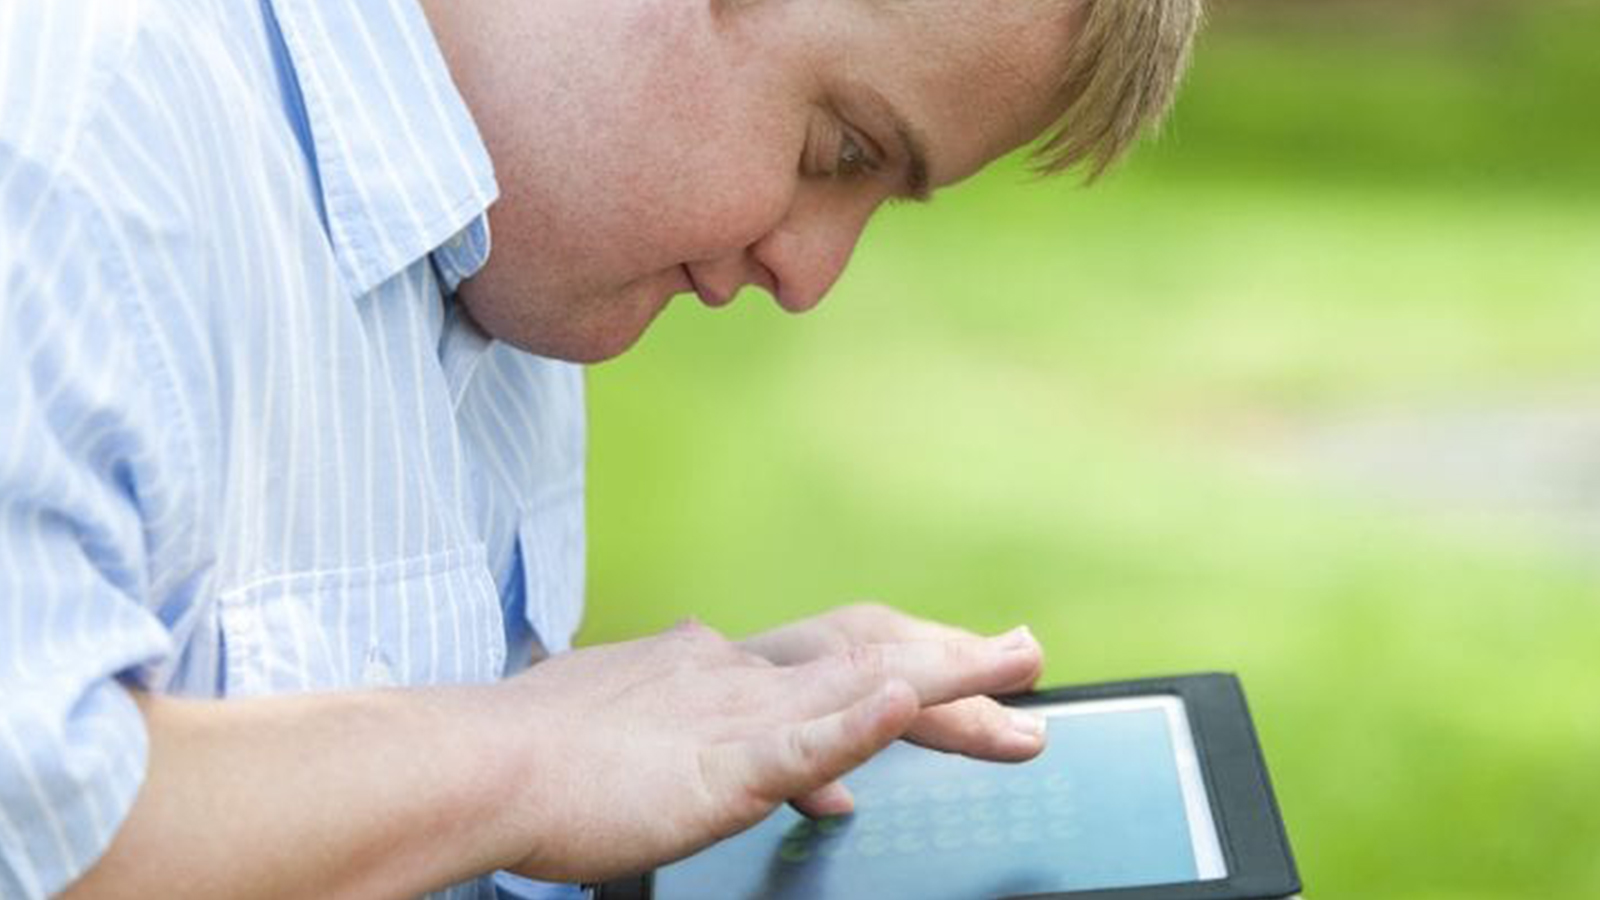 Male using a tablet.